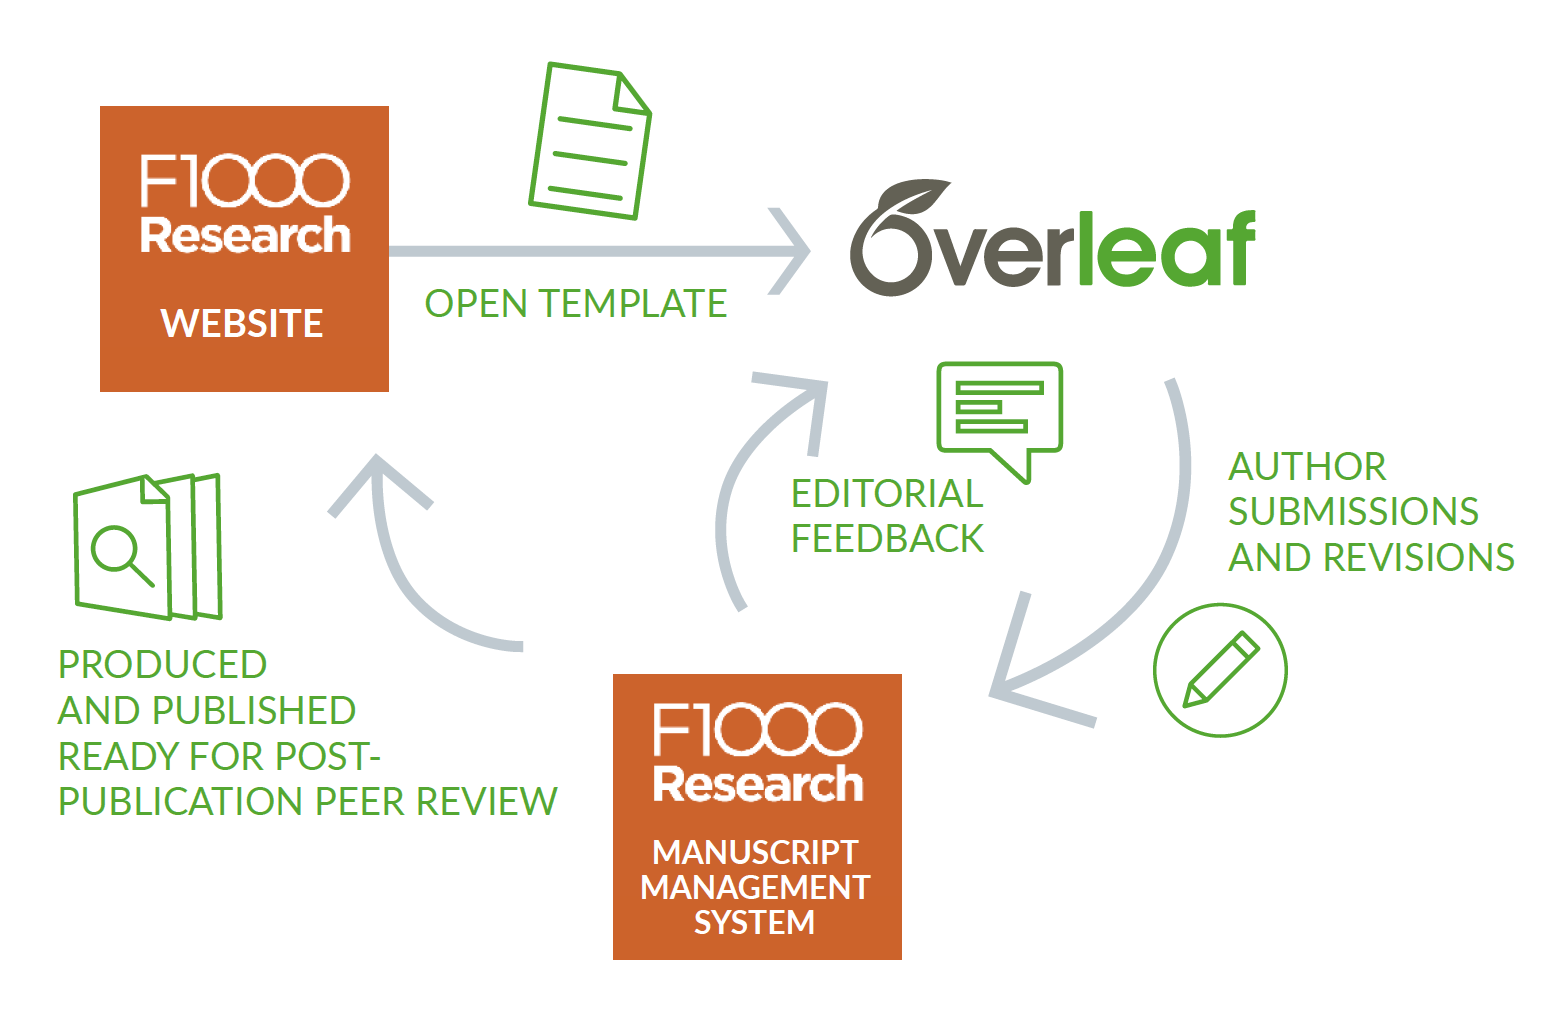 Overleaf-F1000Research-workflow